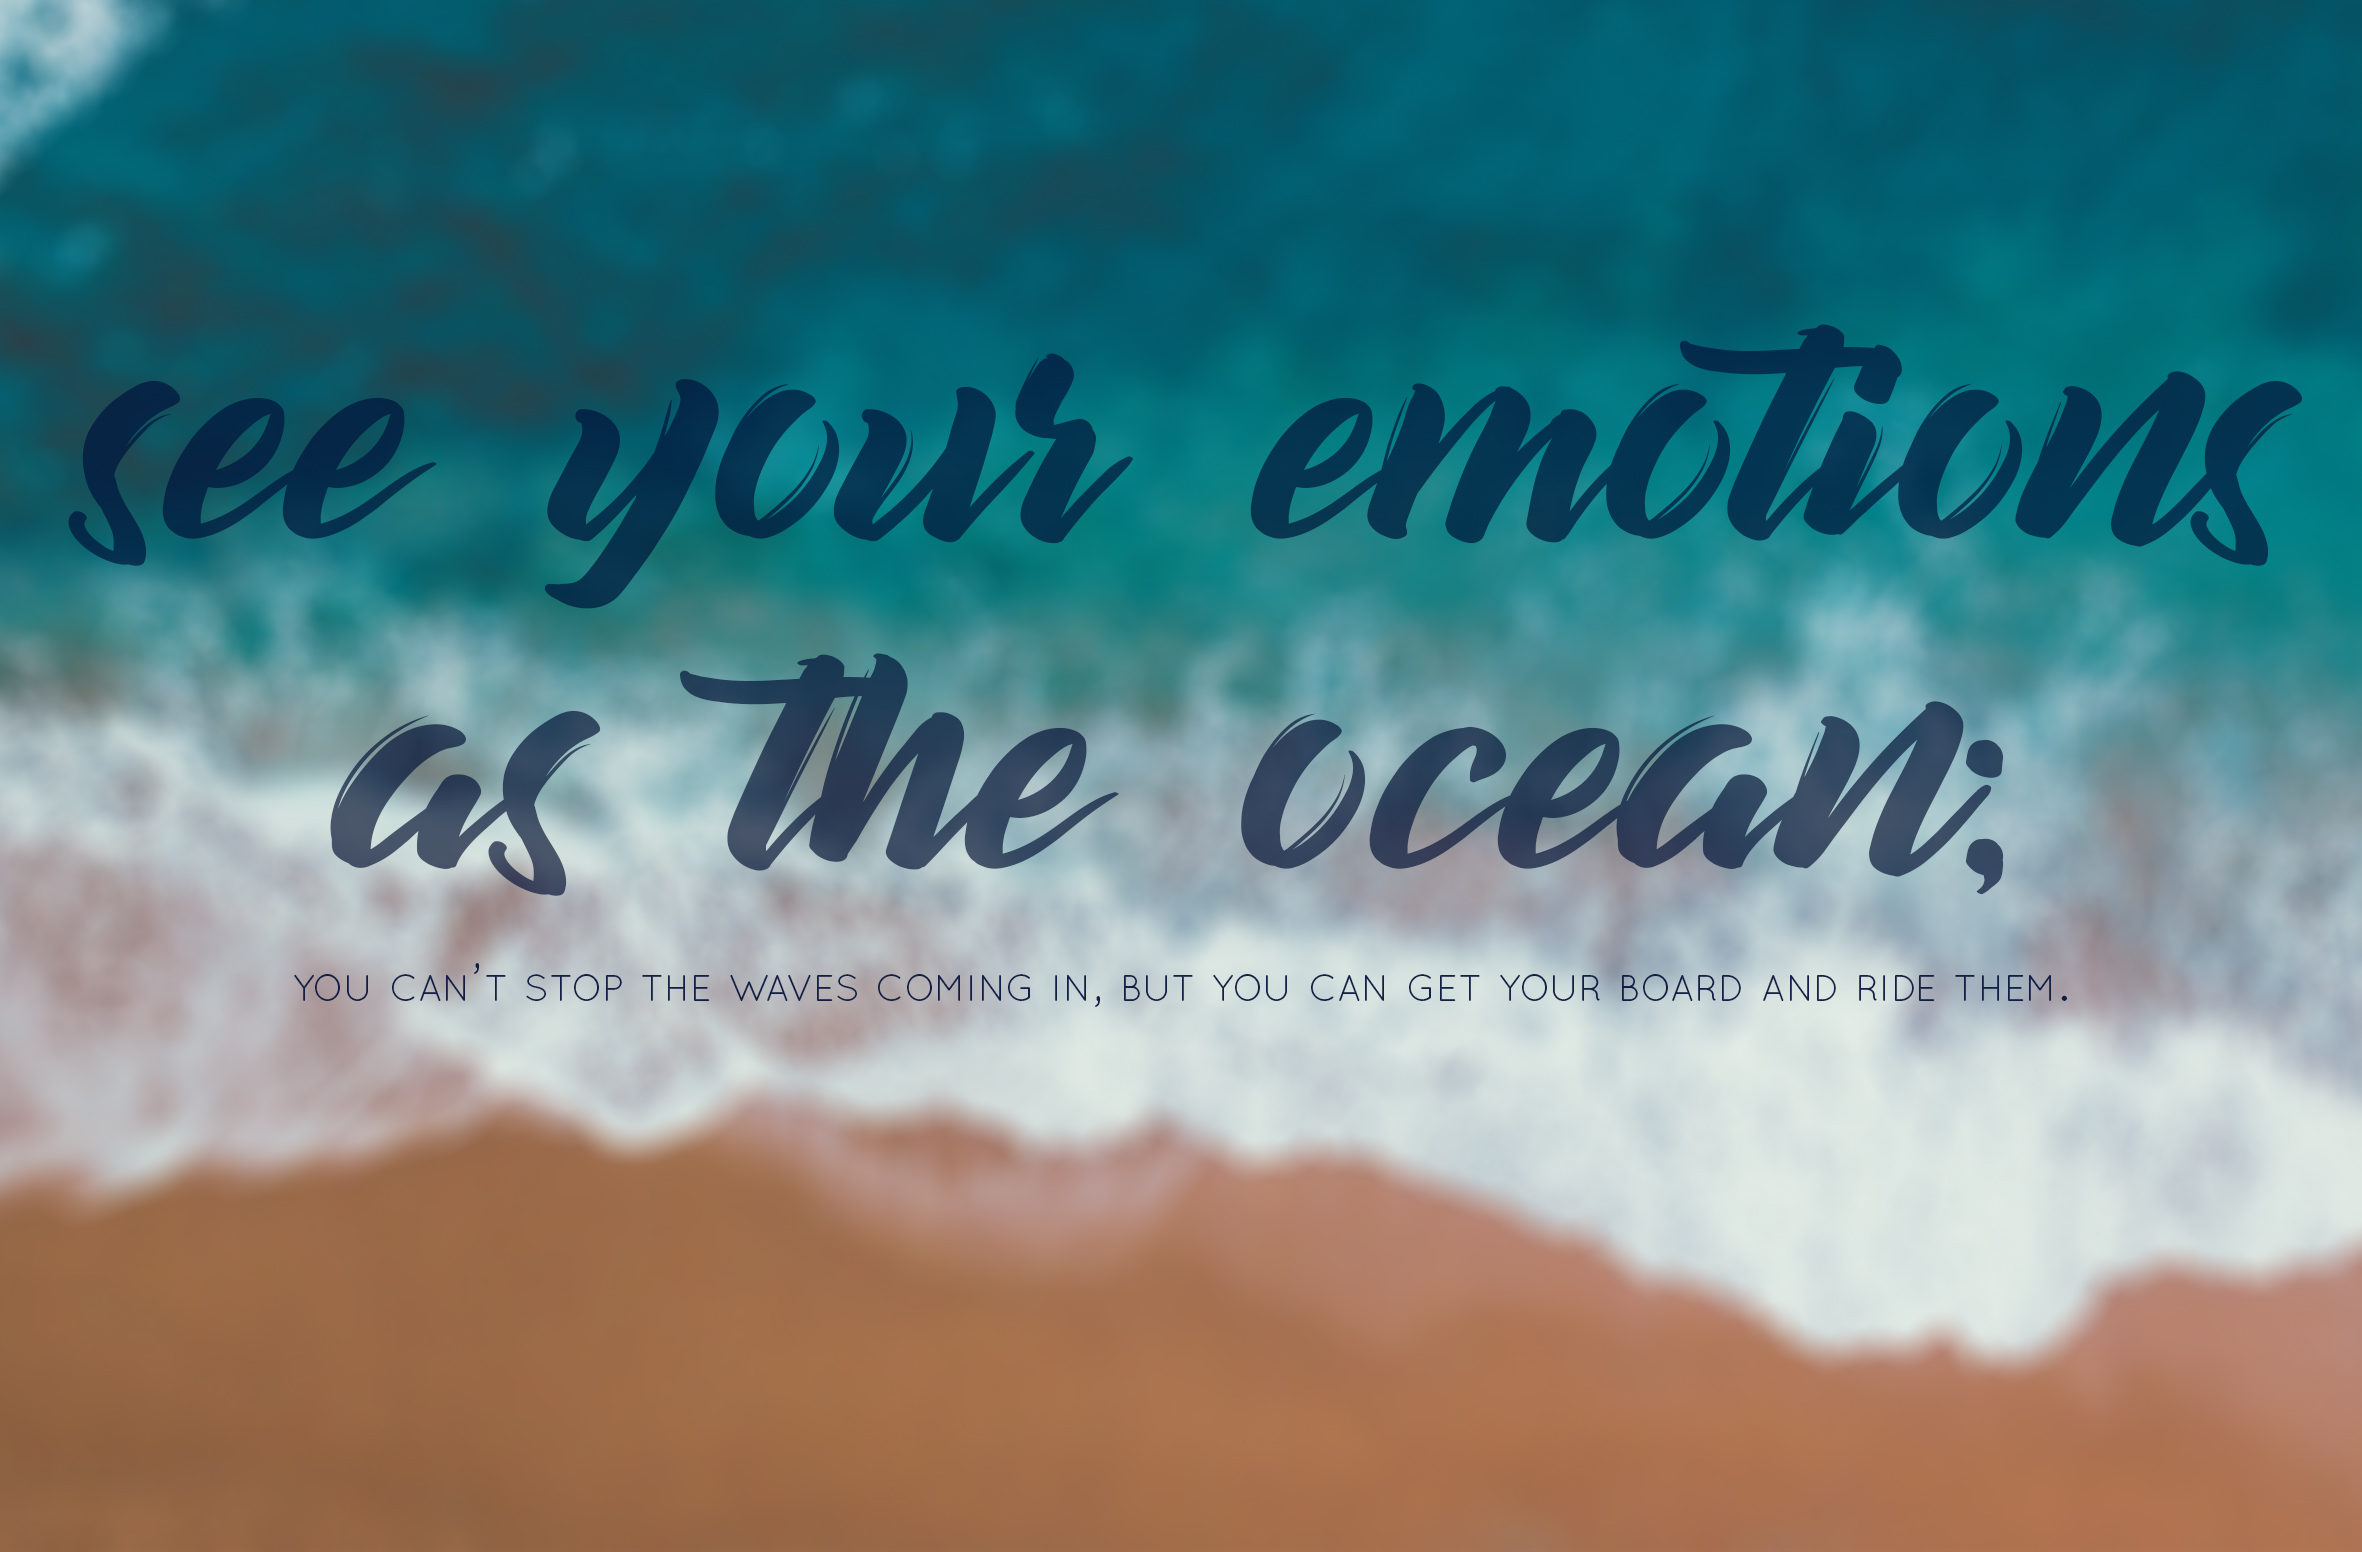 motivational mindful quote: see your emotions as the ocean; you can't stop the waves coming in, but you can get your board and ride them.